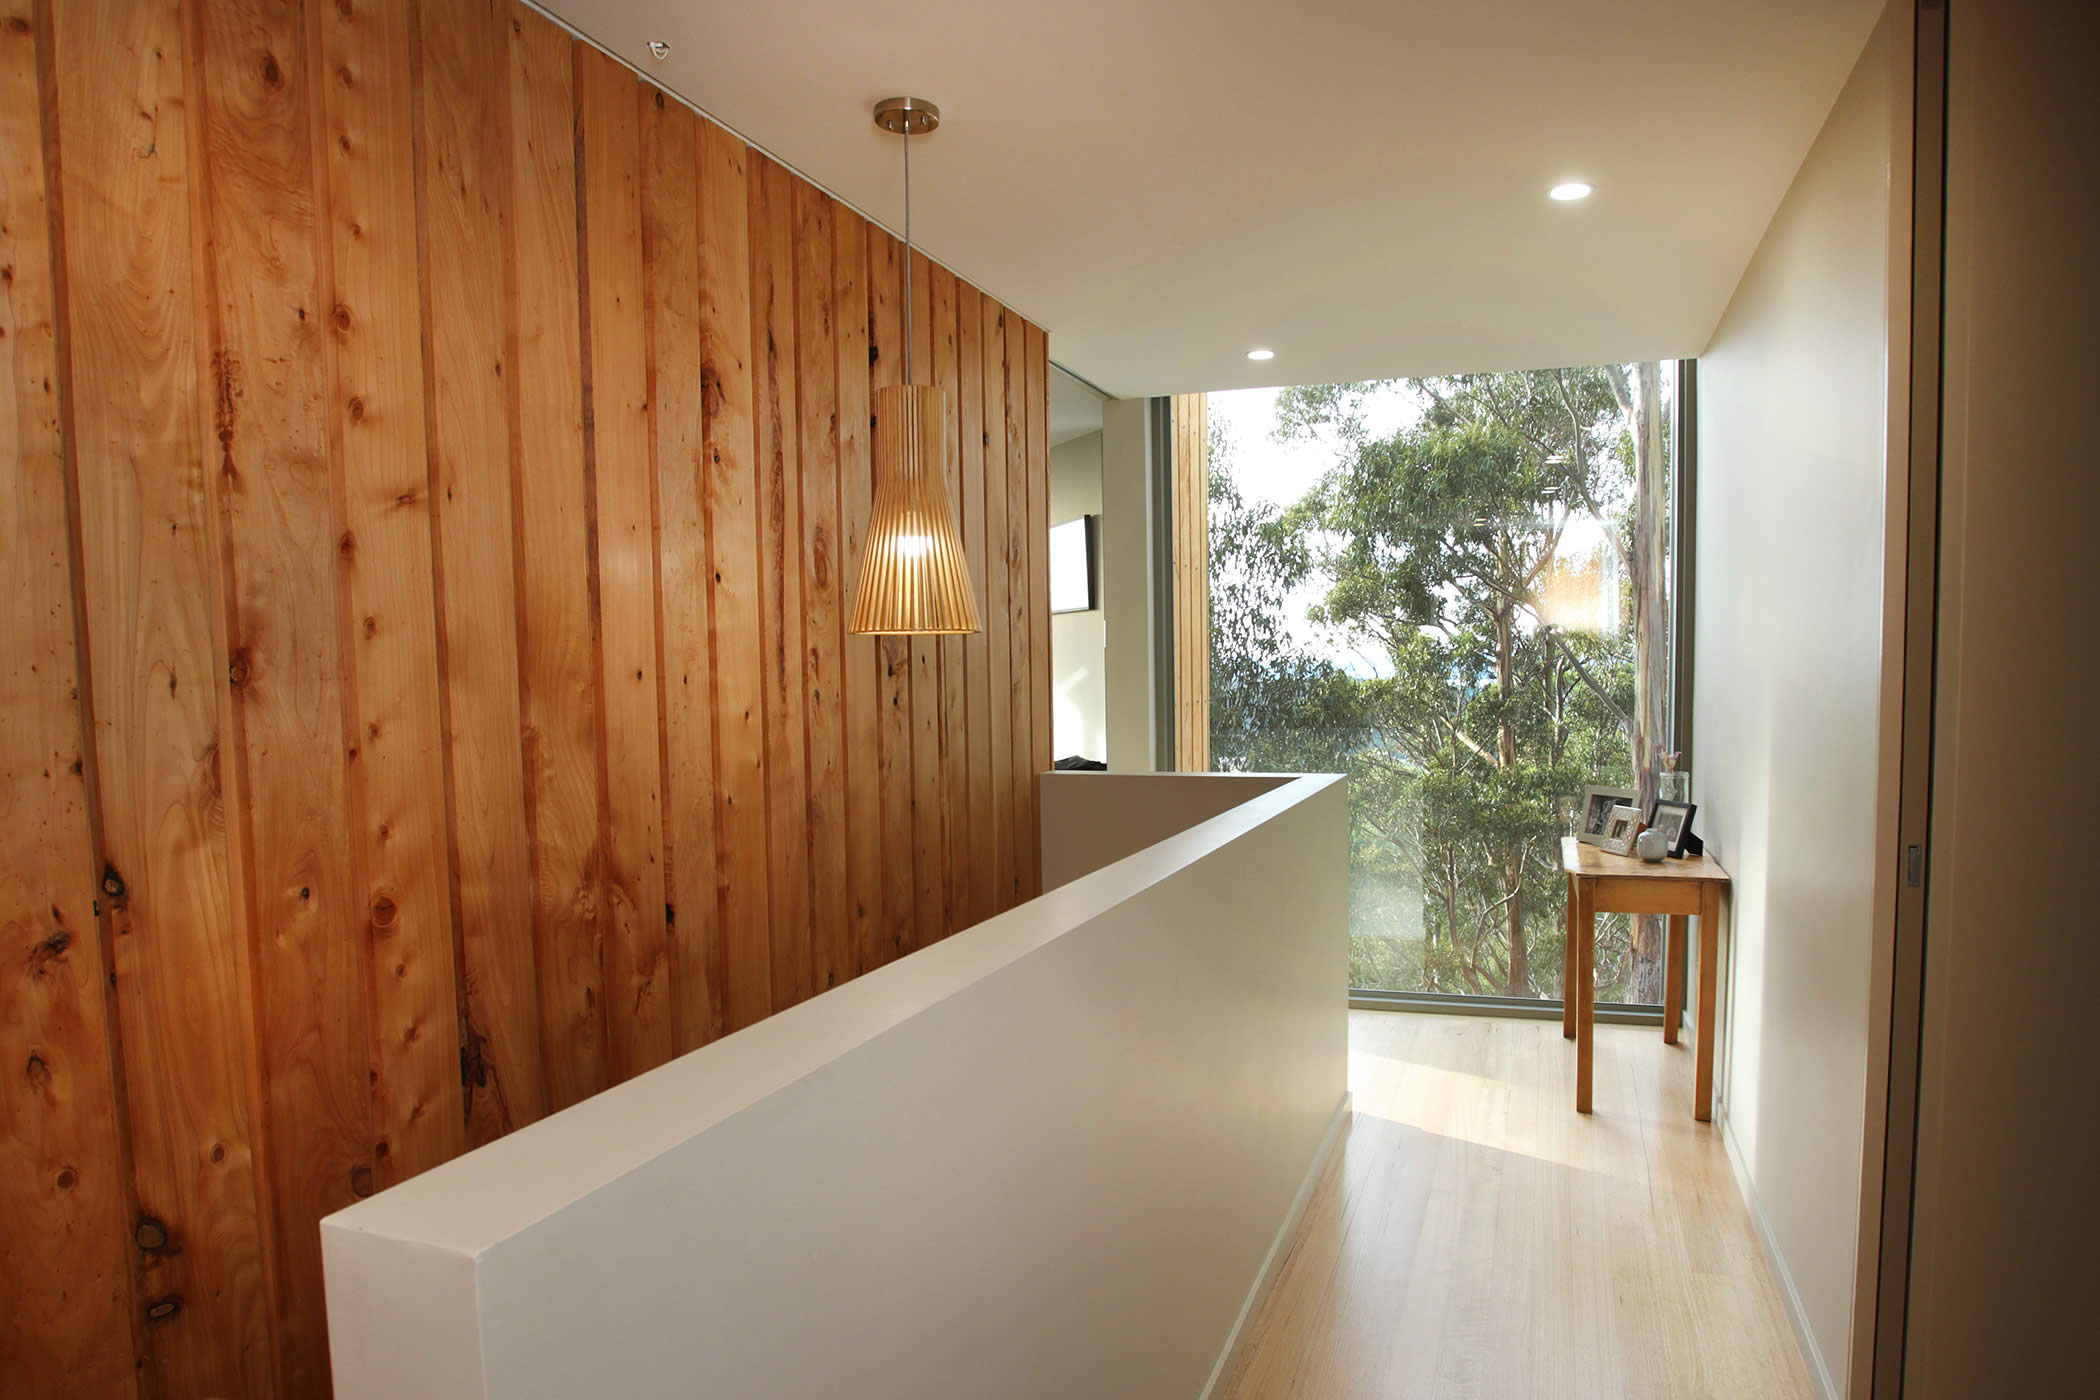 Jamieson Road Residence, Tasmania: We create a memorable effect from the entrance hall by use of natural timber combined with beautiful views through leafy eucalypts to emphasise a natural aesthetic and the country context. Photo by R. Lovell.